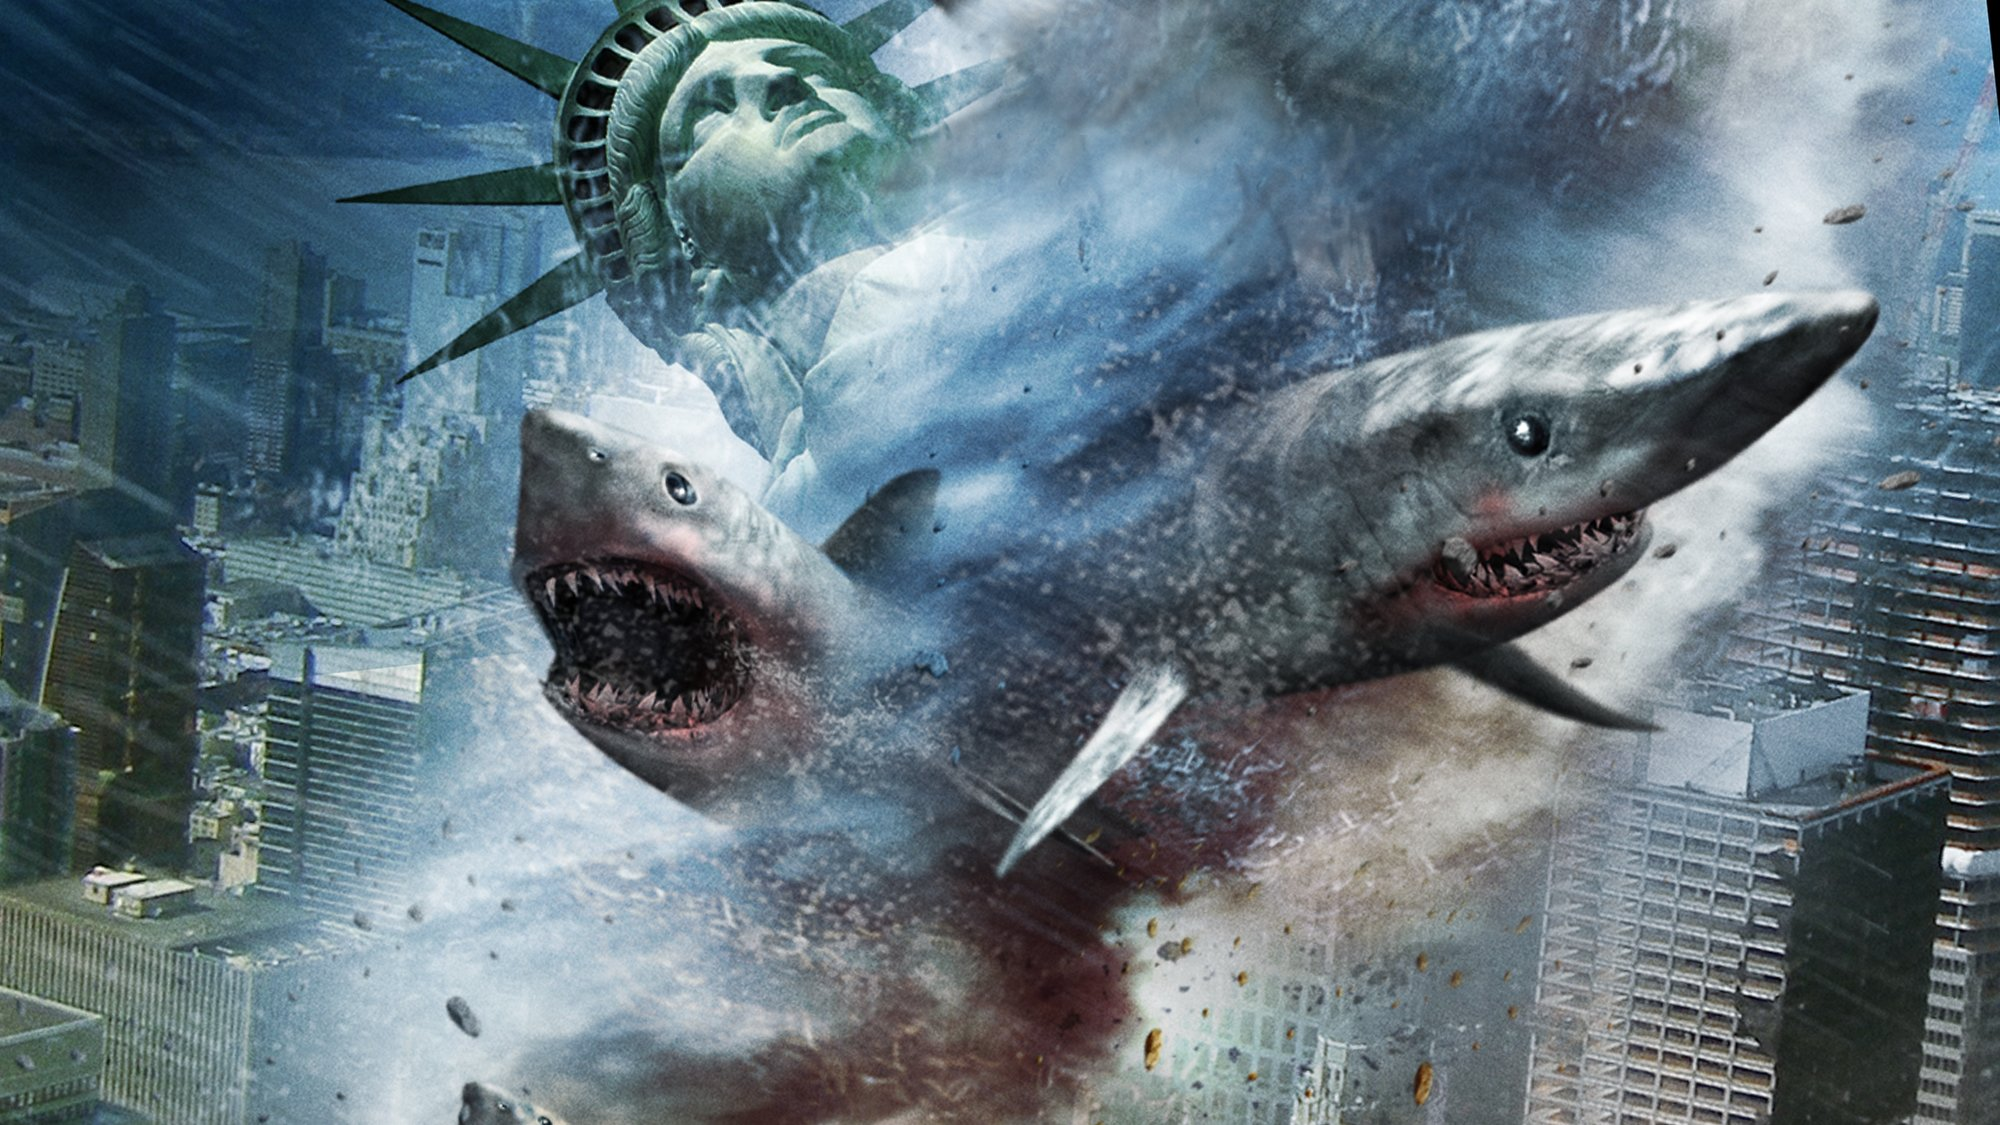 Sharknado 2: The Next One